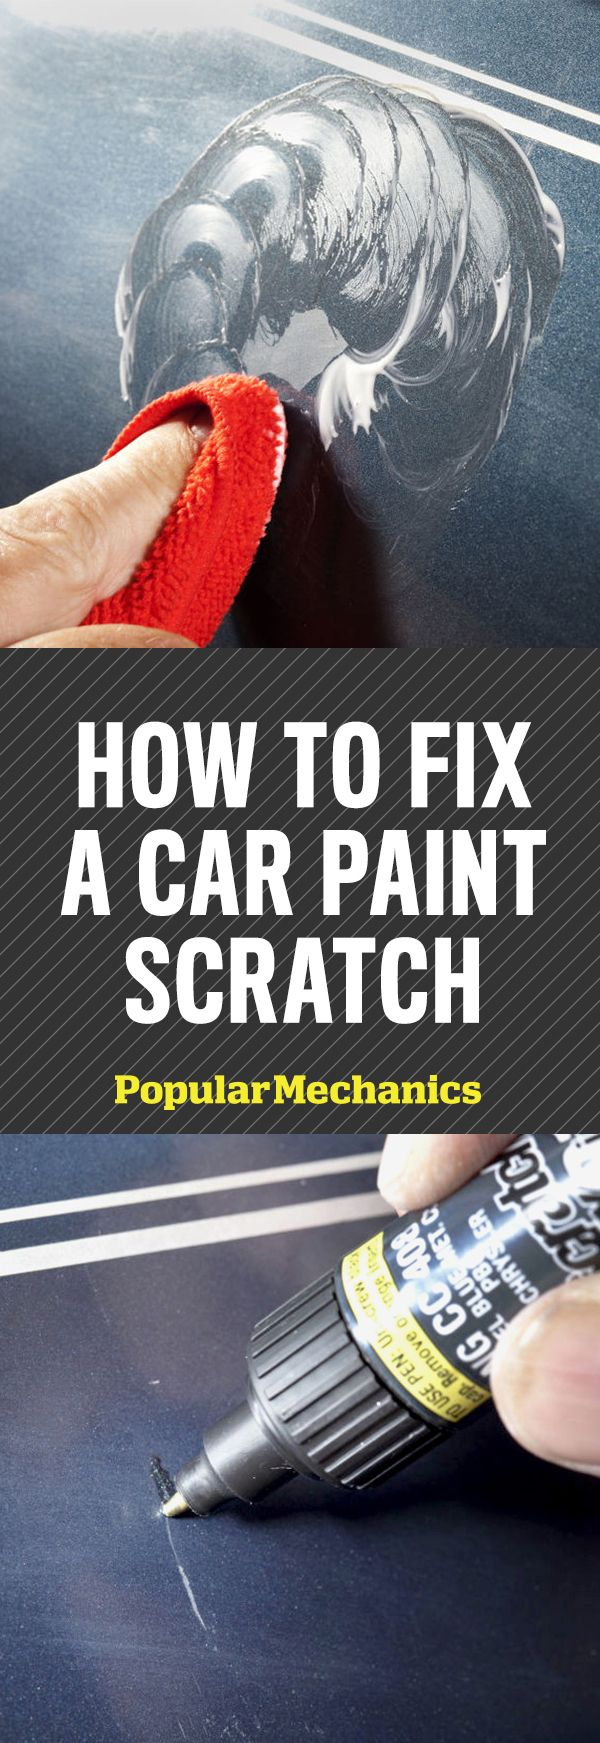 Best Car Scratch Remover Tips                                                                                                                                                                                 More